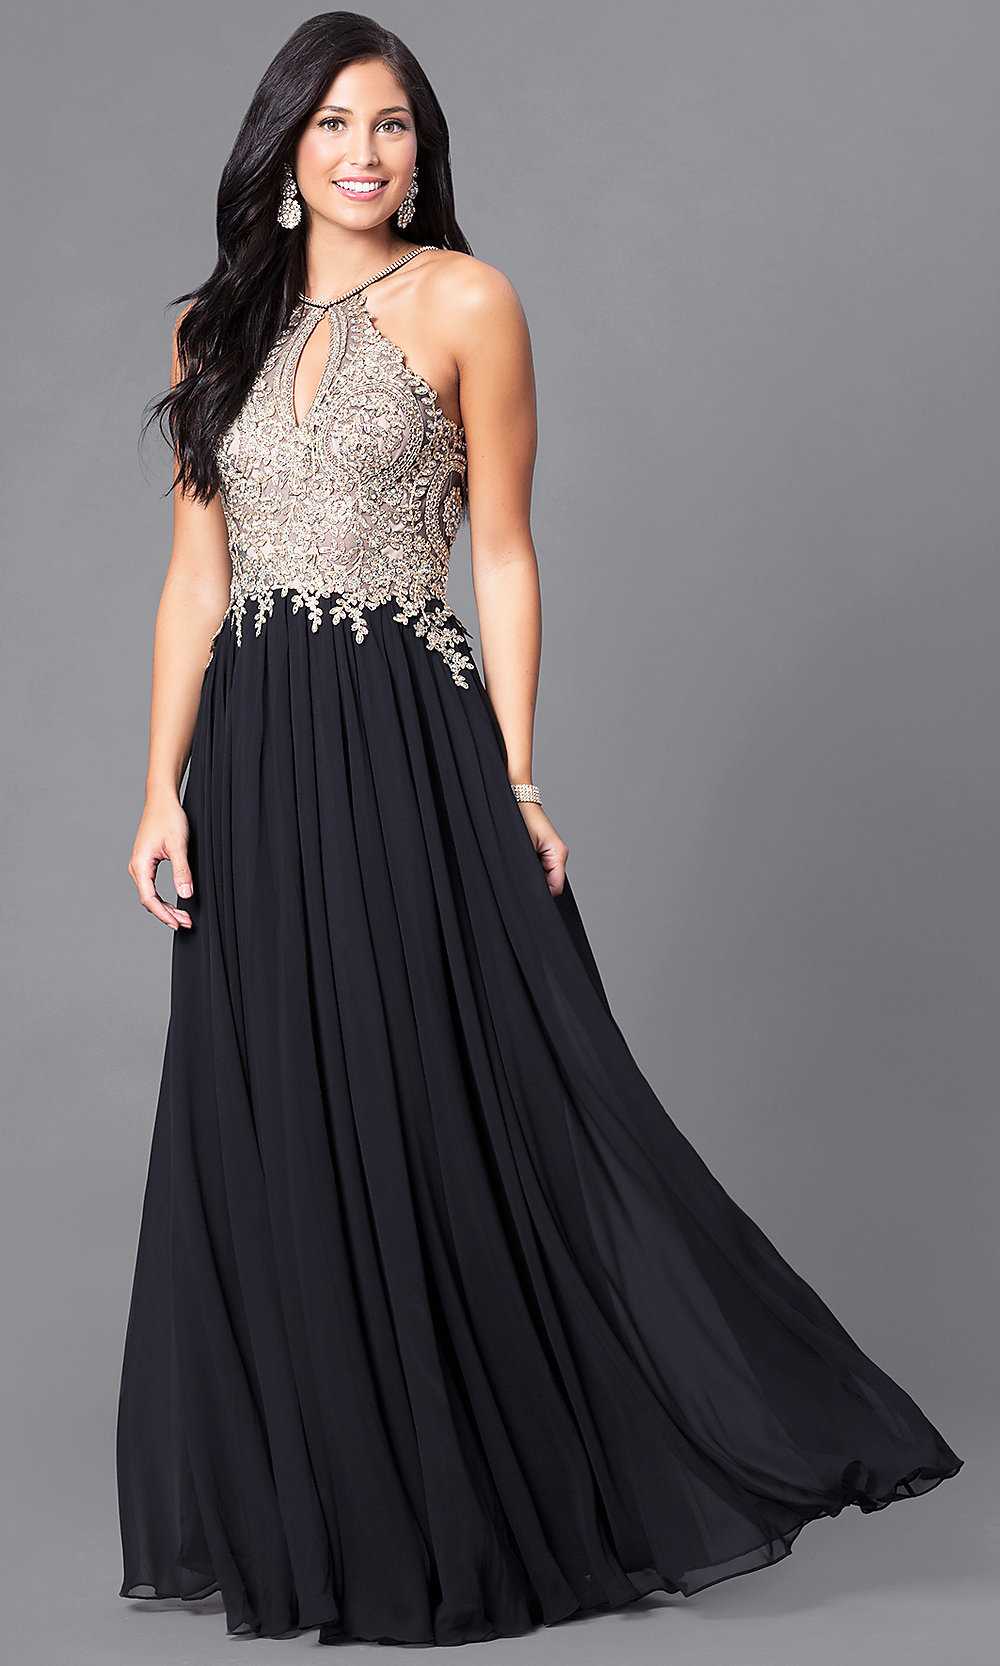 11313d7eafa Tap to expand · Image of black prom dress with lace-applique keyhole bodice.